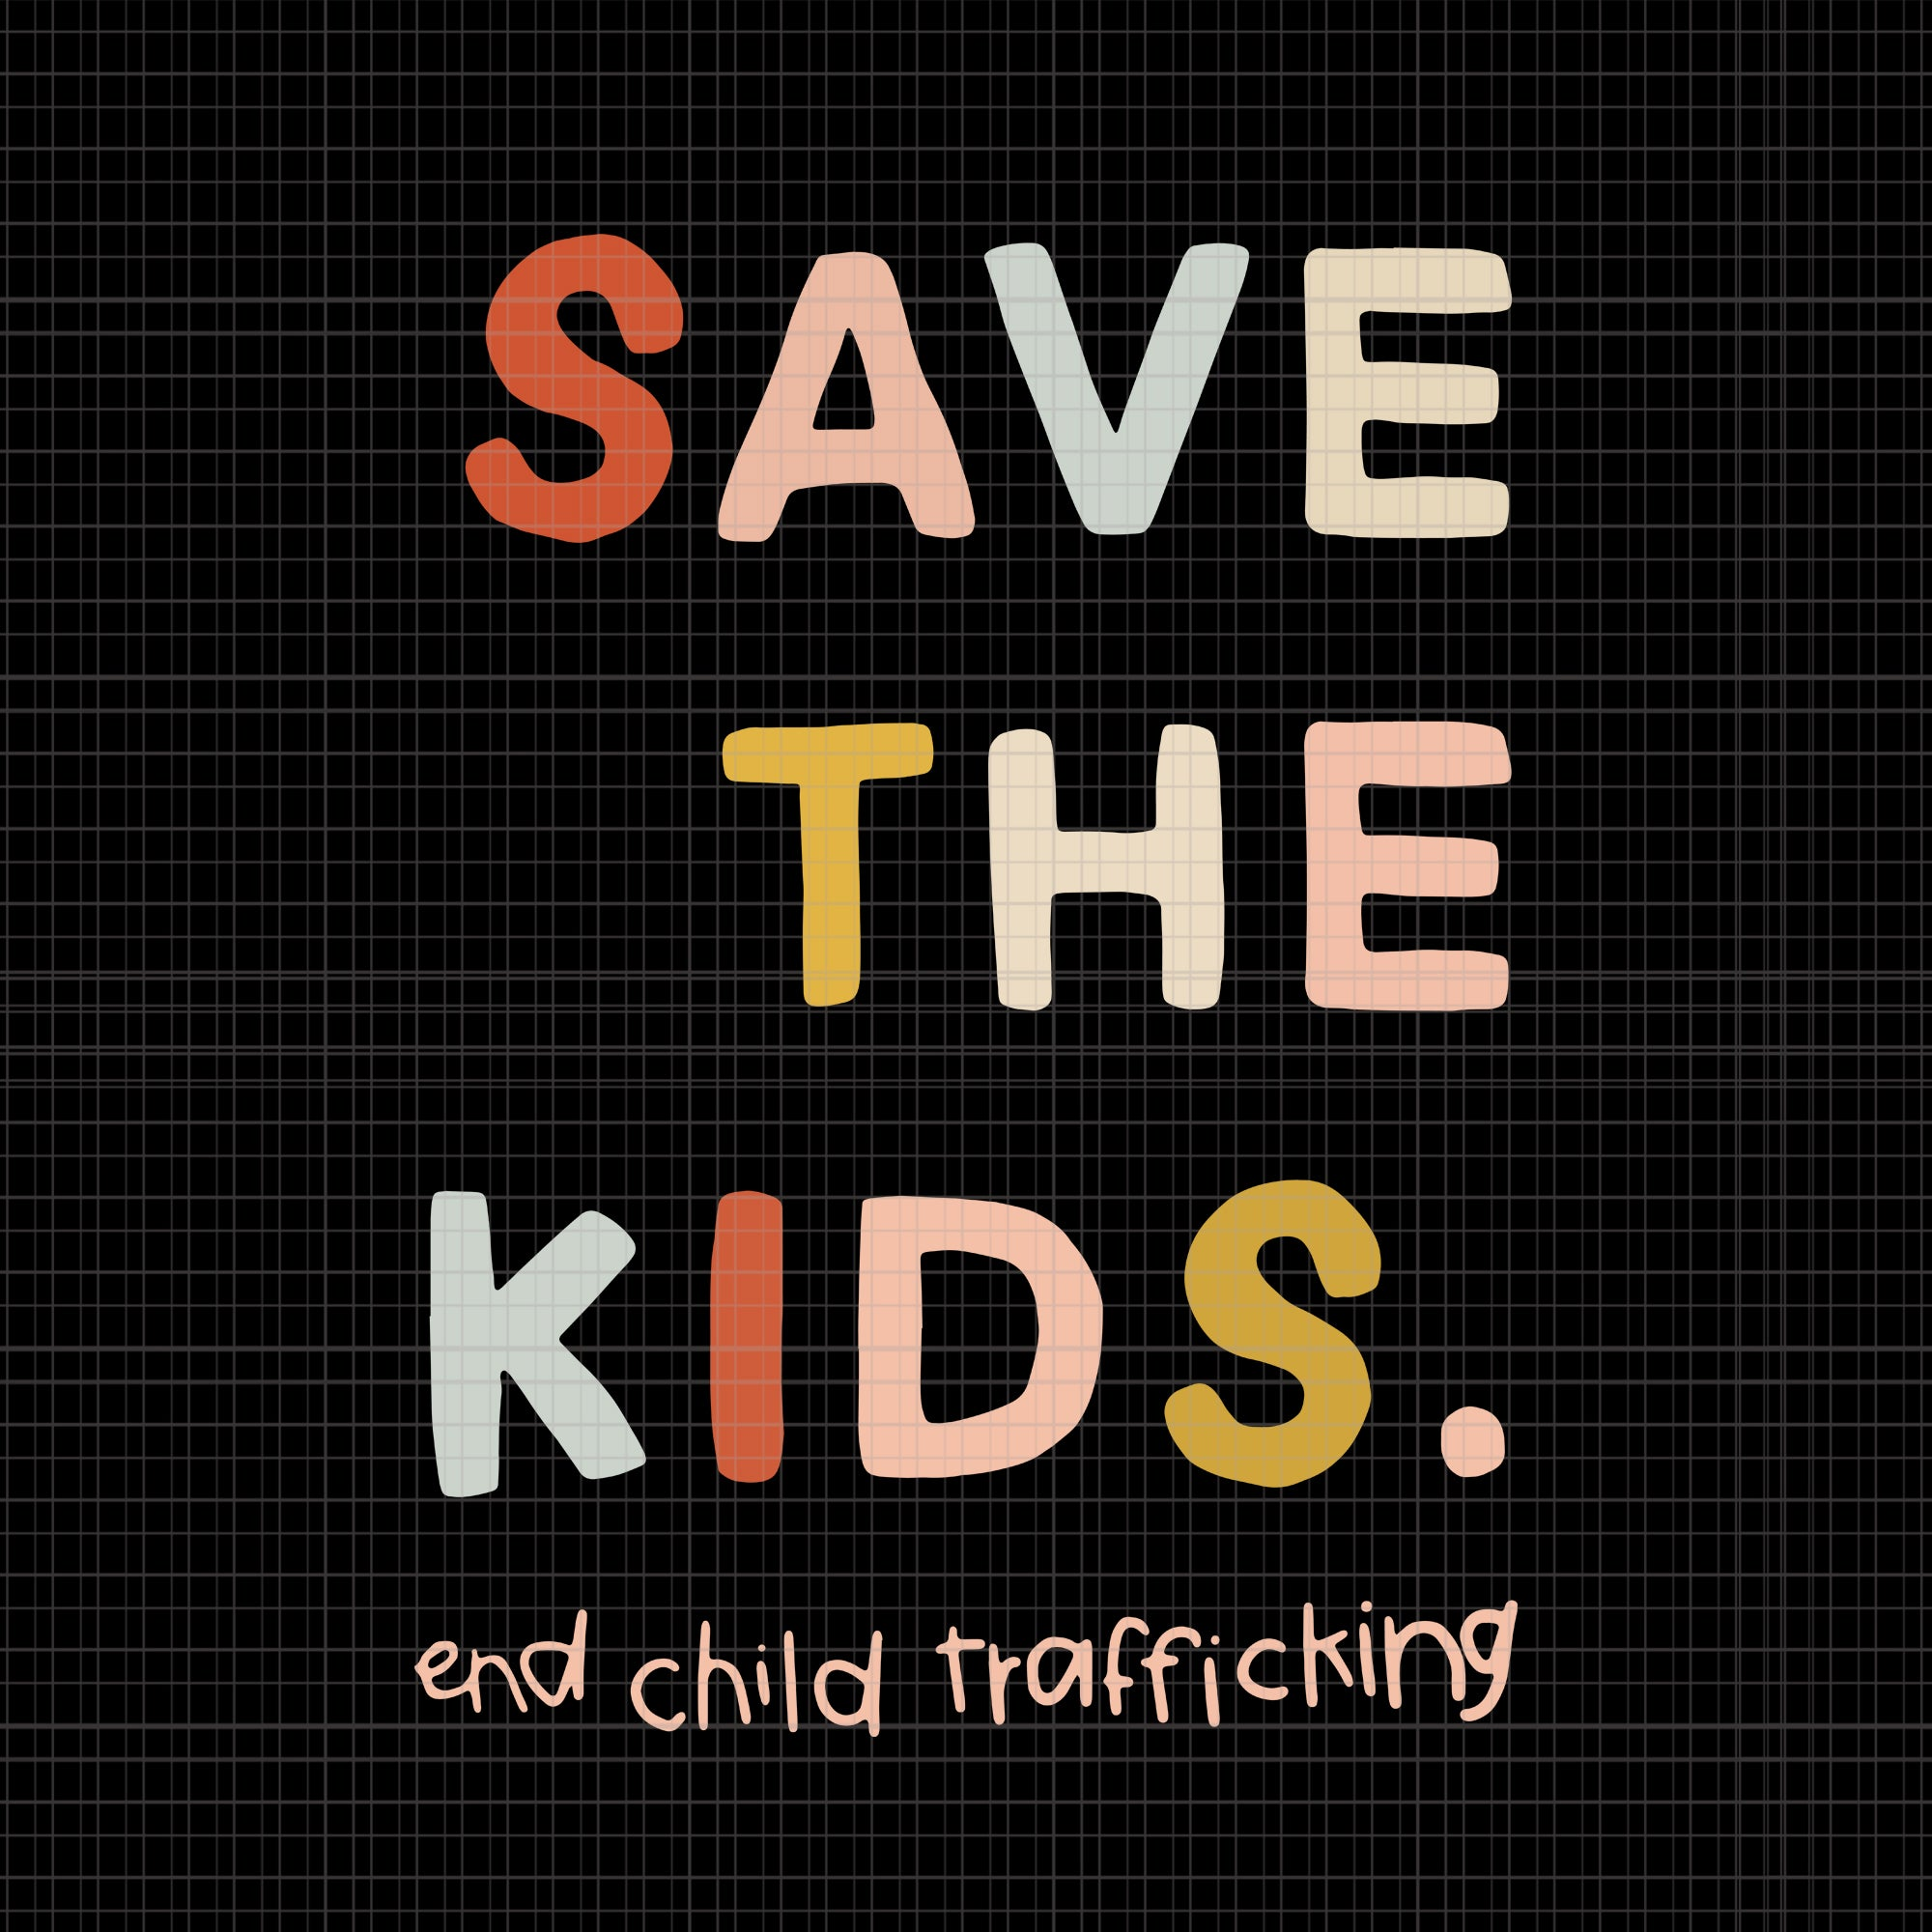 Save the Kids End Child Trafficking, Save the Kids End Child Trafficking svg, Save the Kids End Child Trafficking png, eps, dxf, svg file